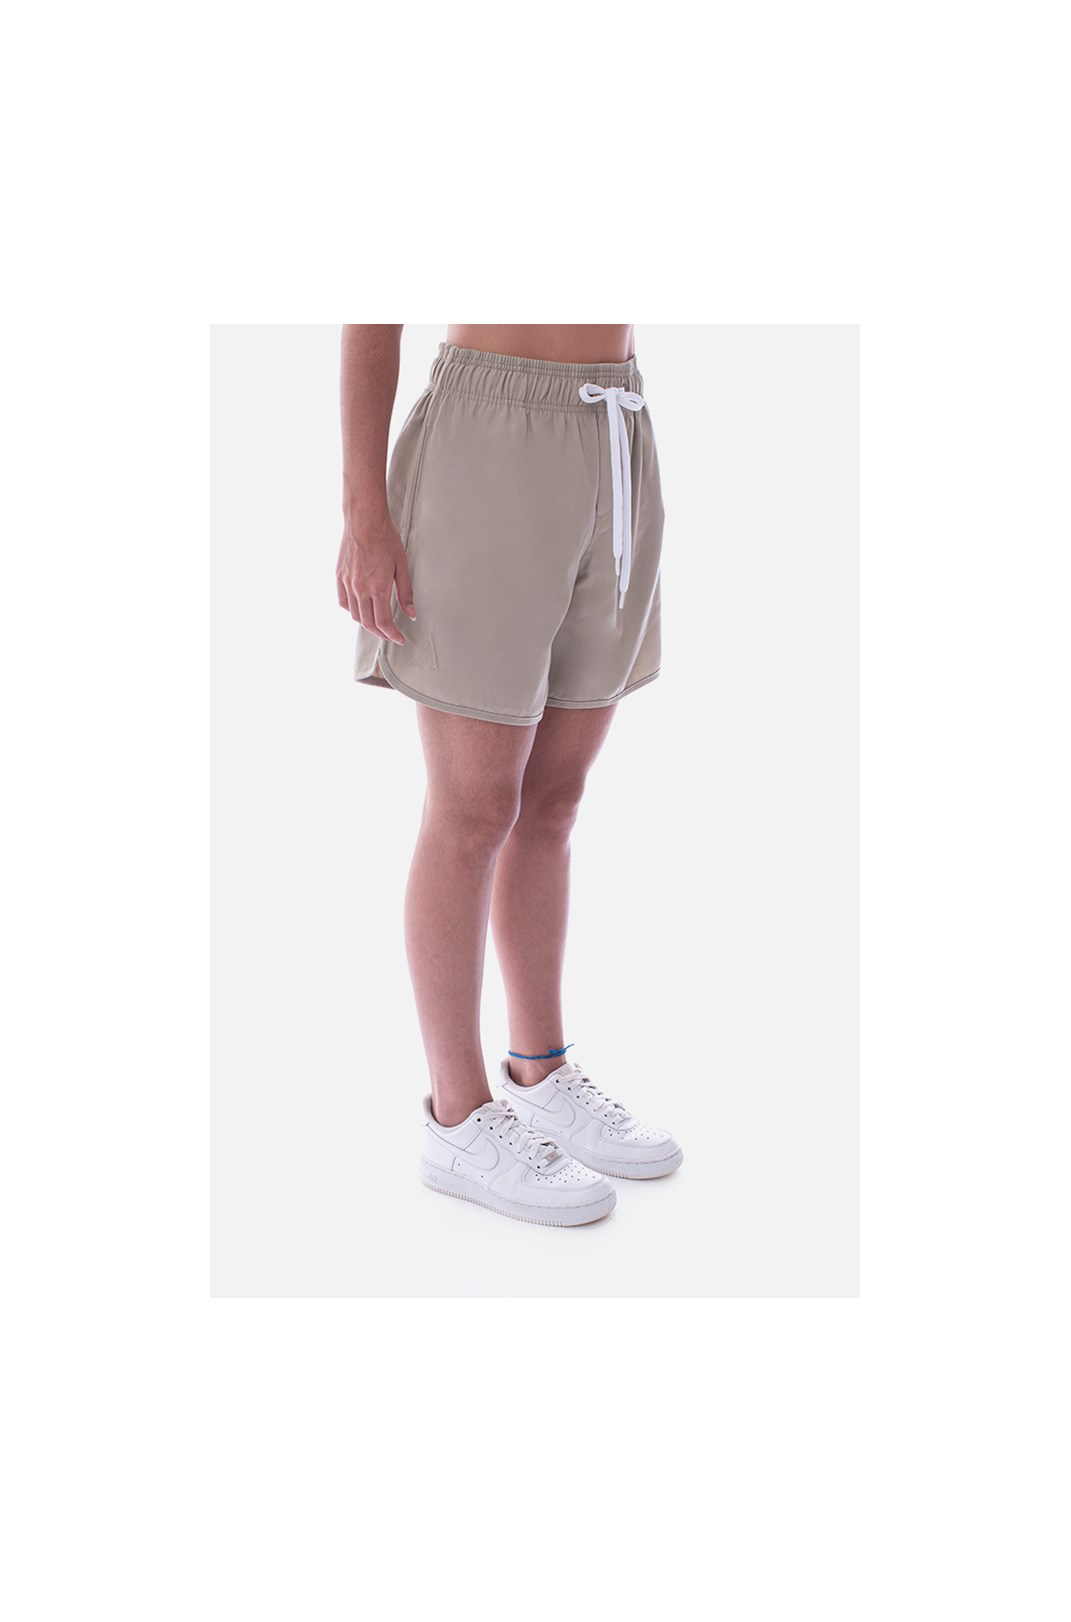 Shorts Sarja Approve Canvas III Bege